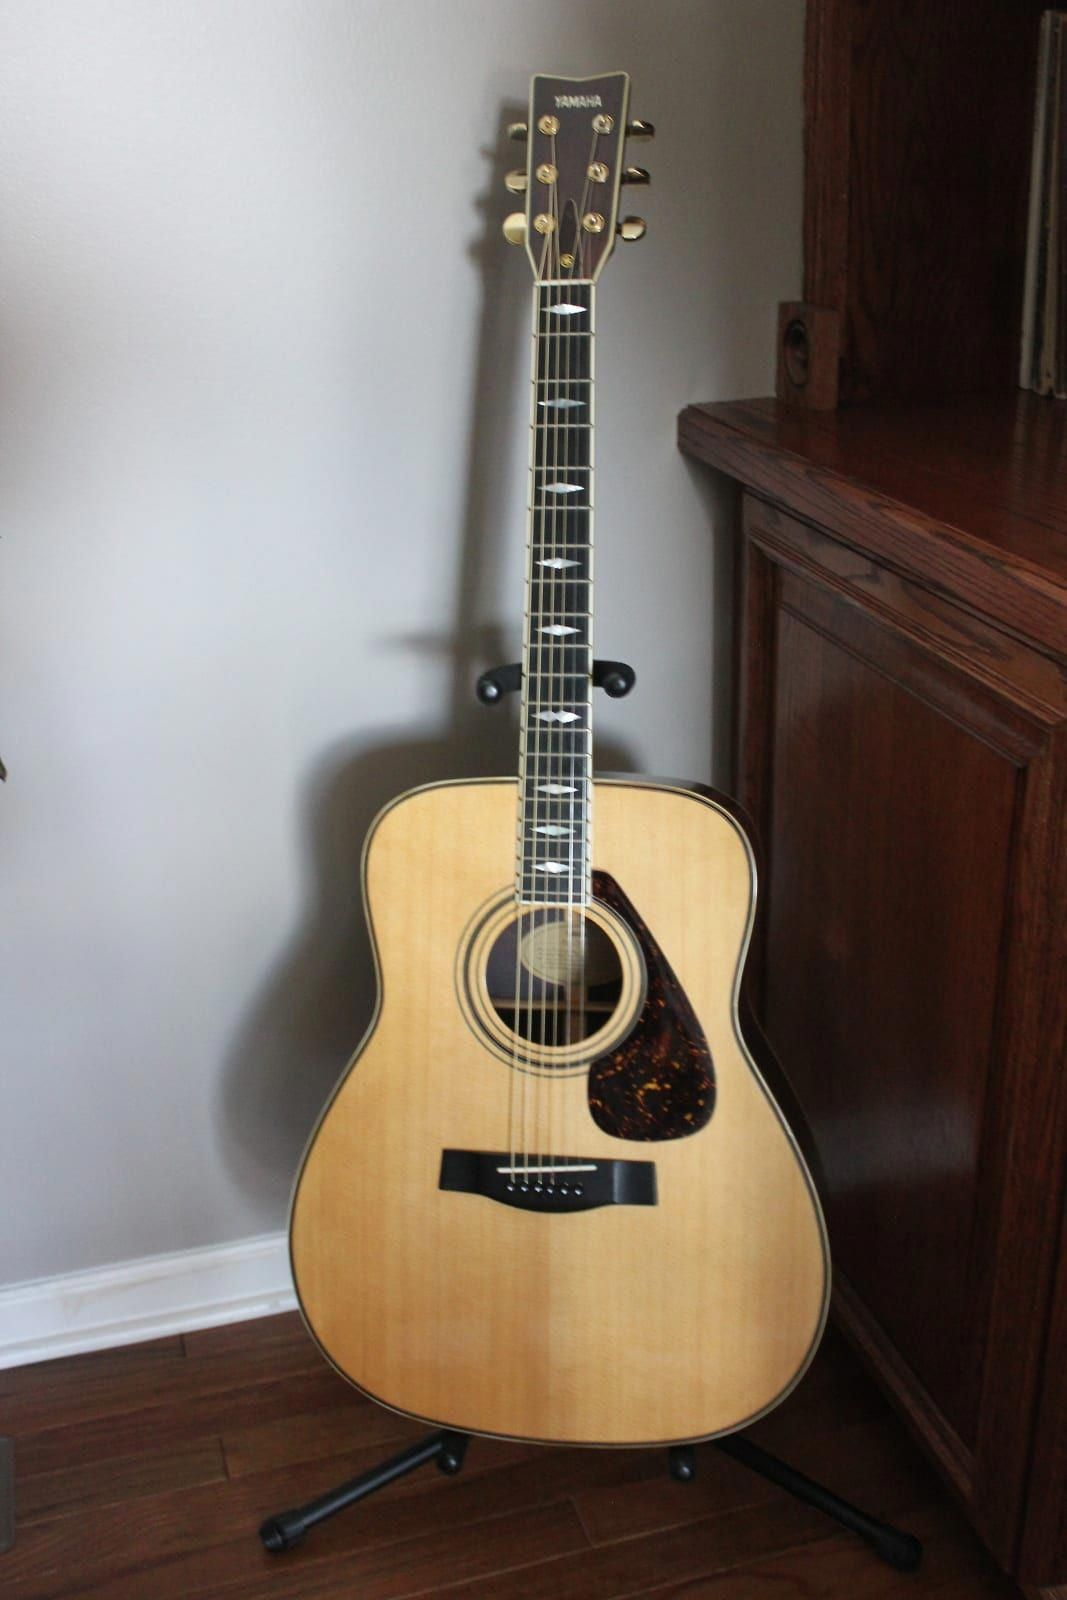 Yamaha Acoustic Guitars Which Are Really Cool Yamahaacousticguitars Best Acoustic Guitar Yamaha Guitar Yamaha Acoustic Guitar